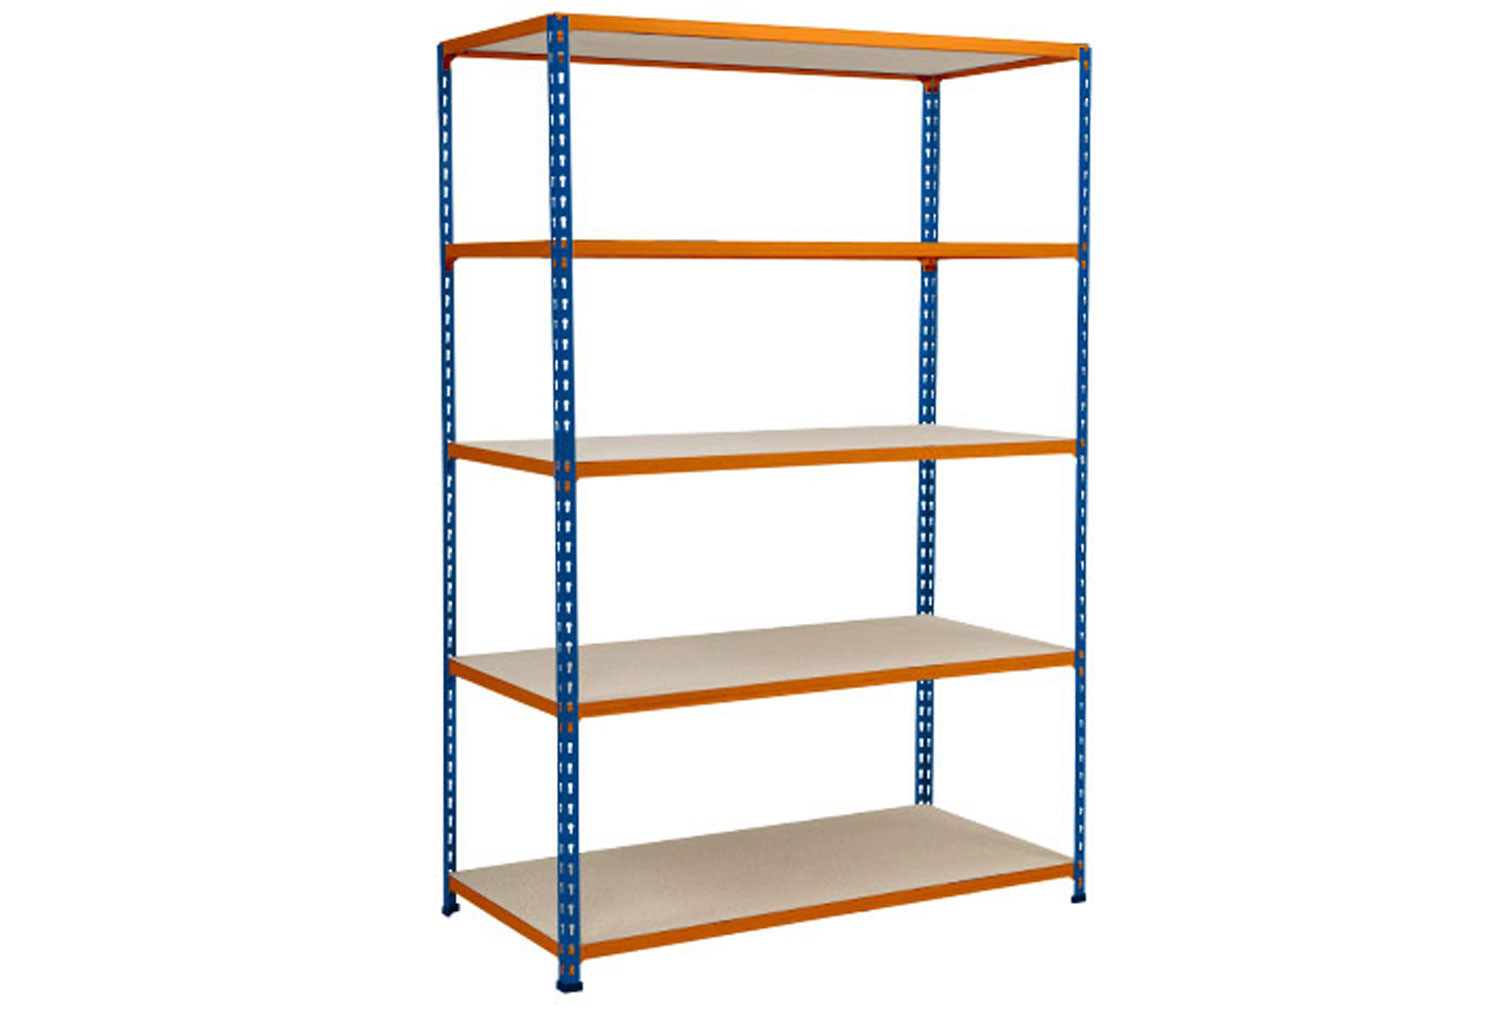 Rapid 2 Shelving With 5 Chipboard Shelves 1220wx1980h (Blue/Orange)